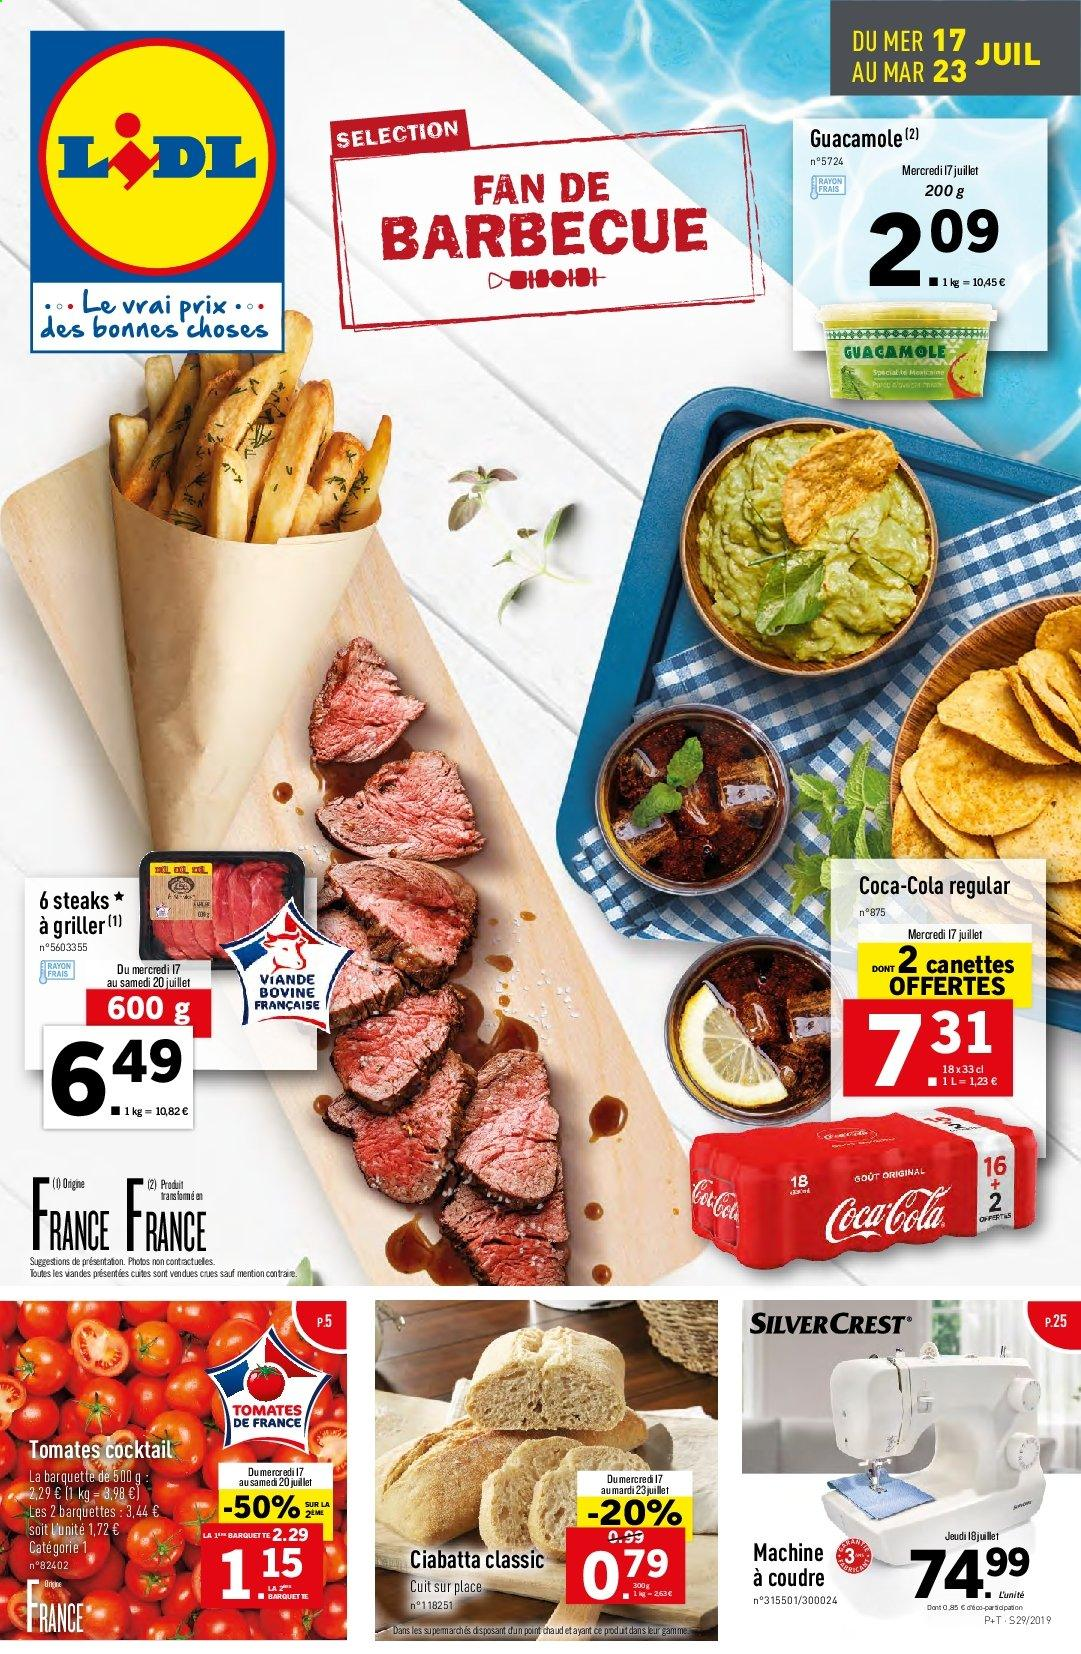 Catalogue Lidl - 17.07.2019 - 23.07.2019. Page 1.